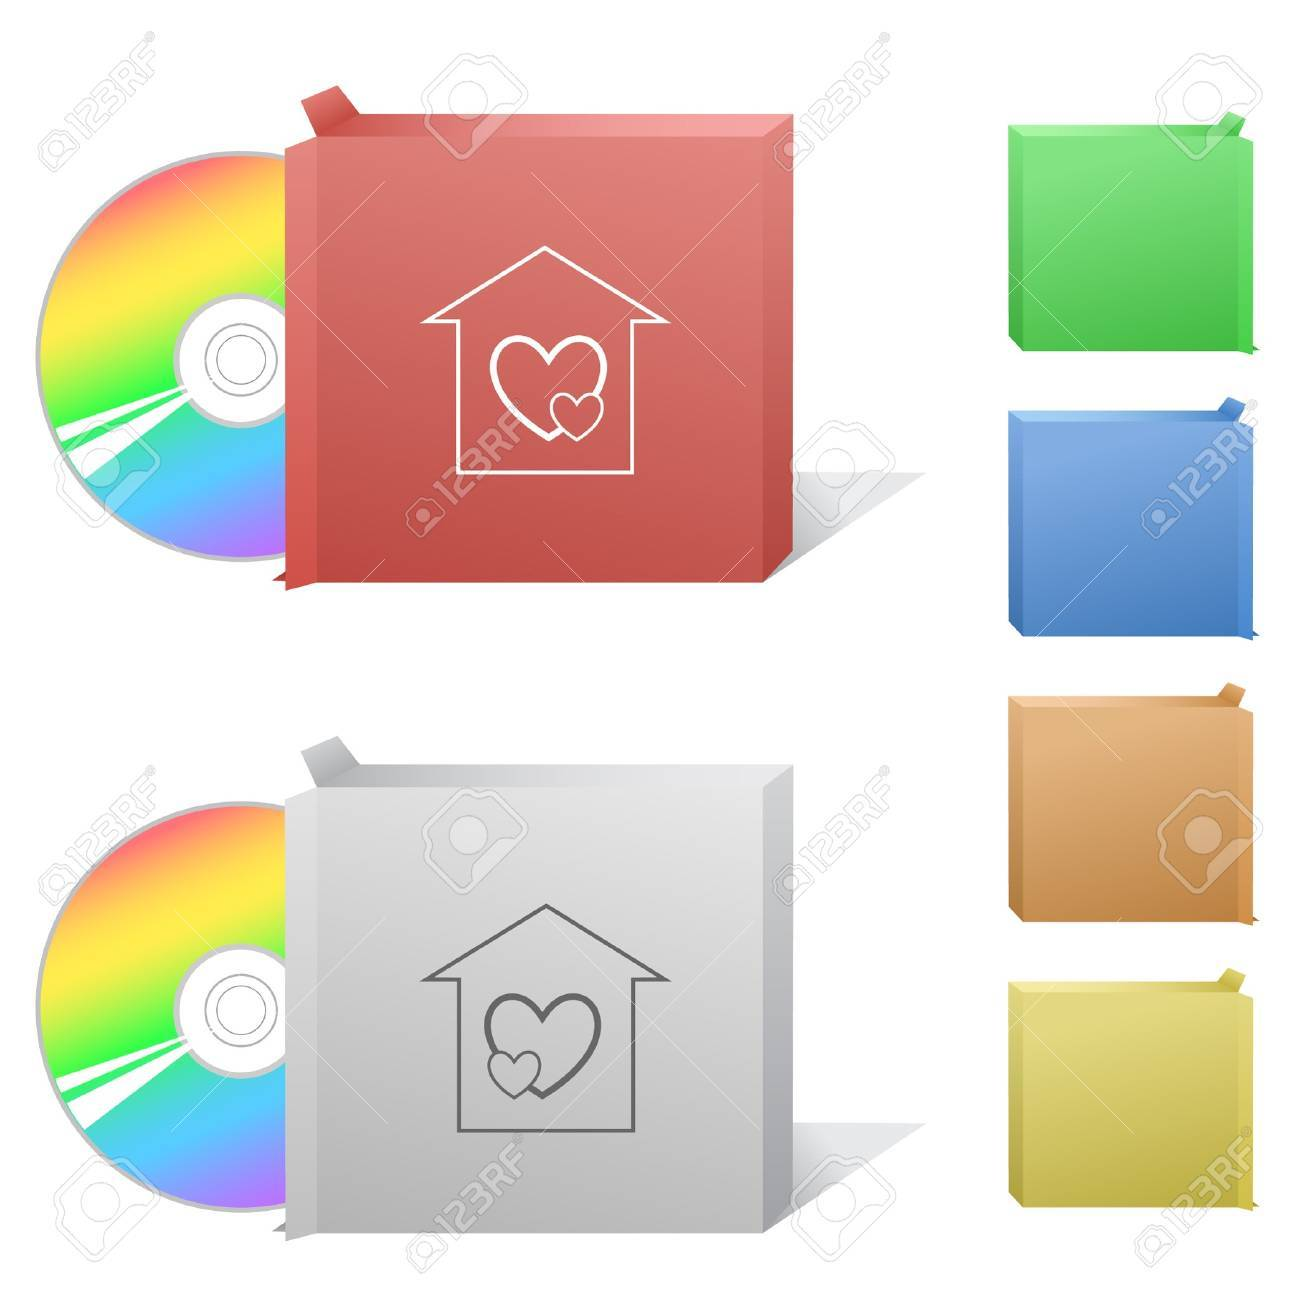 Orphanage. Box with compact disc. Stock Vector - 7176179